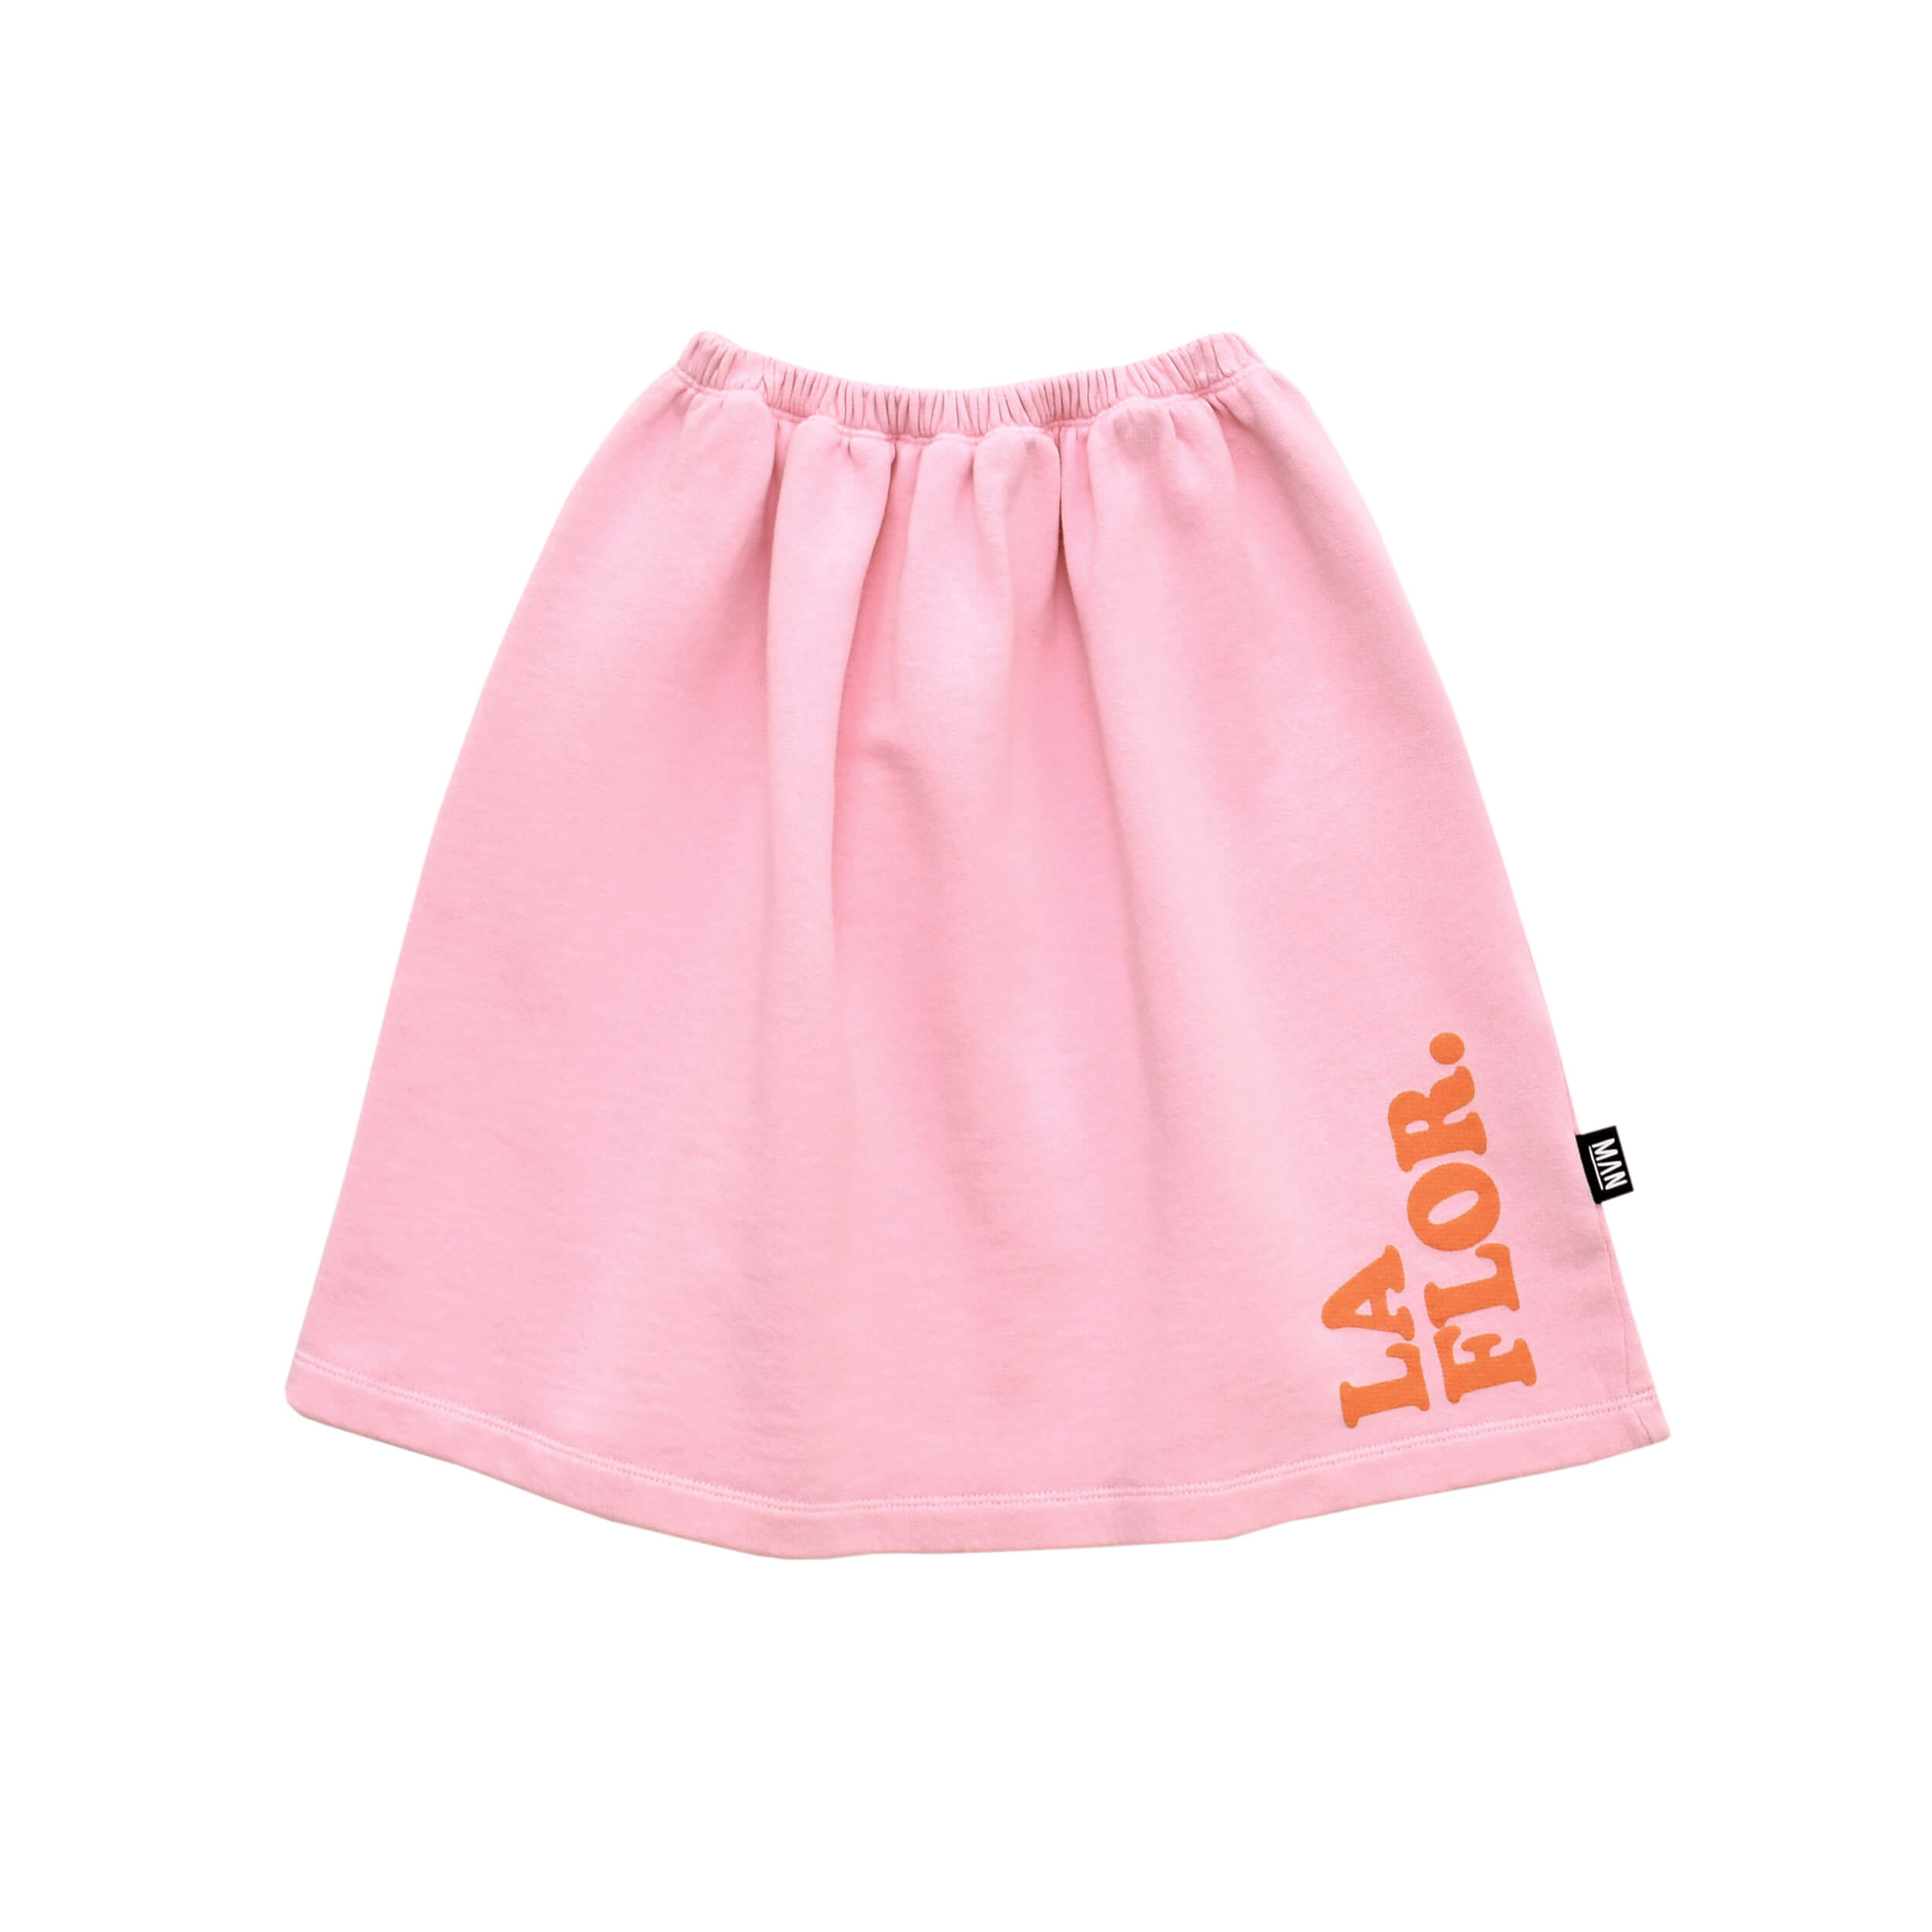 rose girls skirt